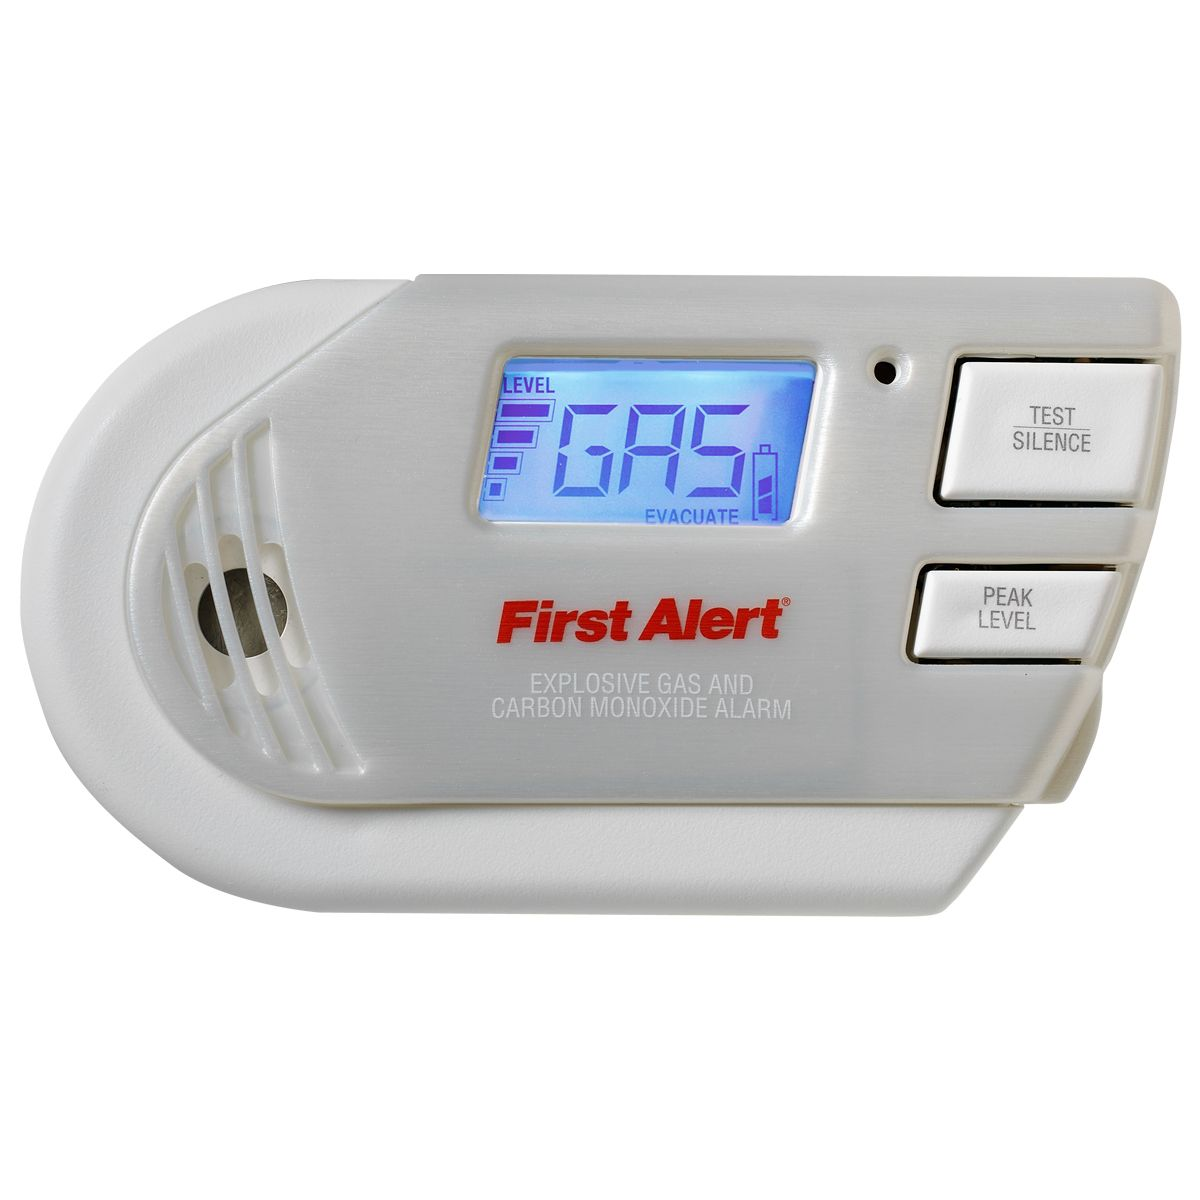 First Alert Carbon Monoxide & Gas Alarm with Remote Controlled Test/Silence Function